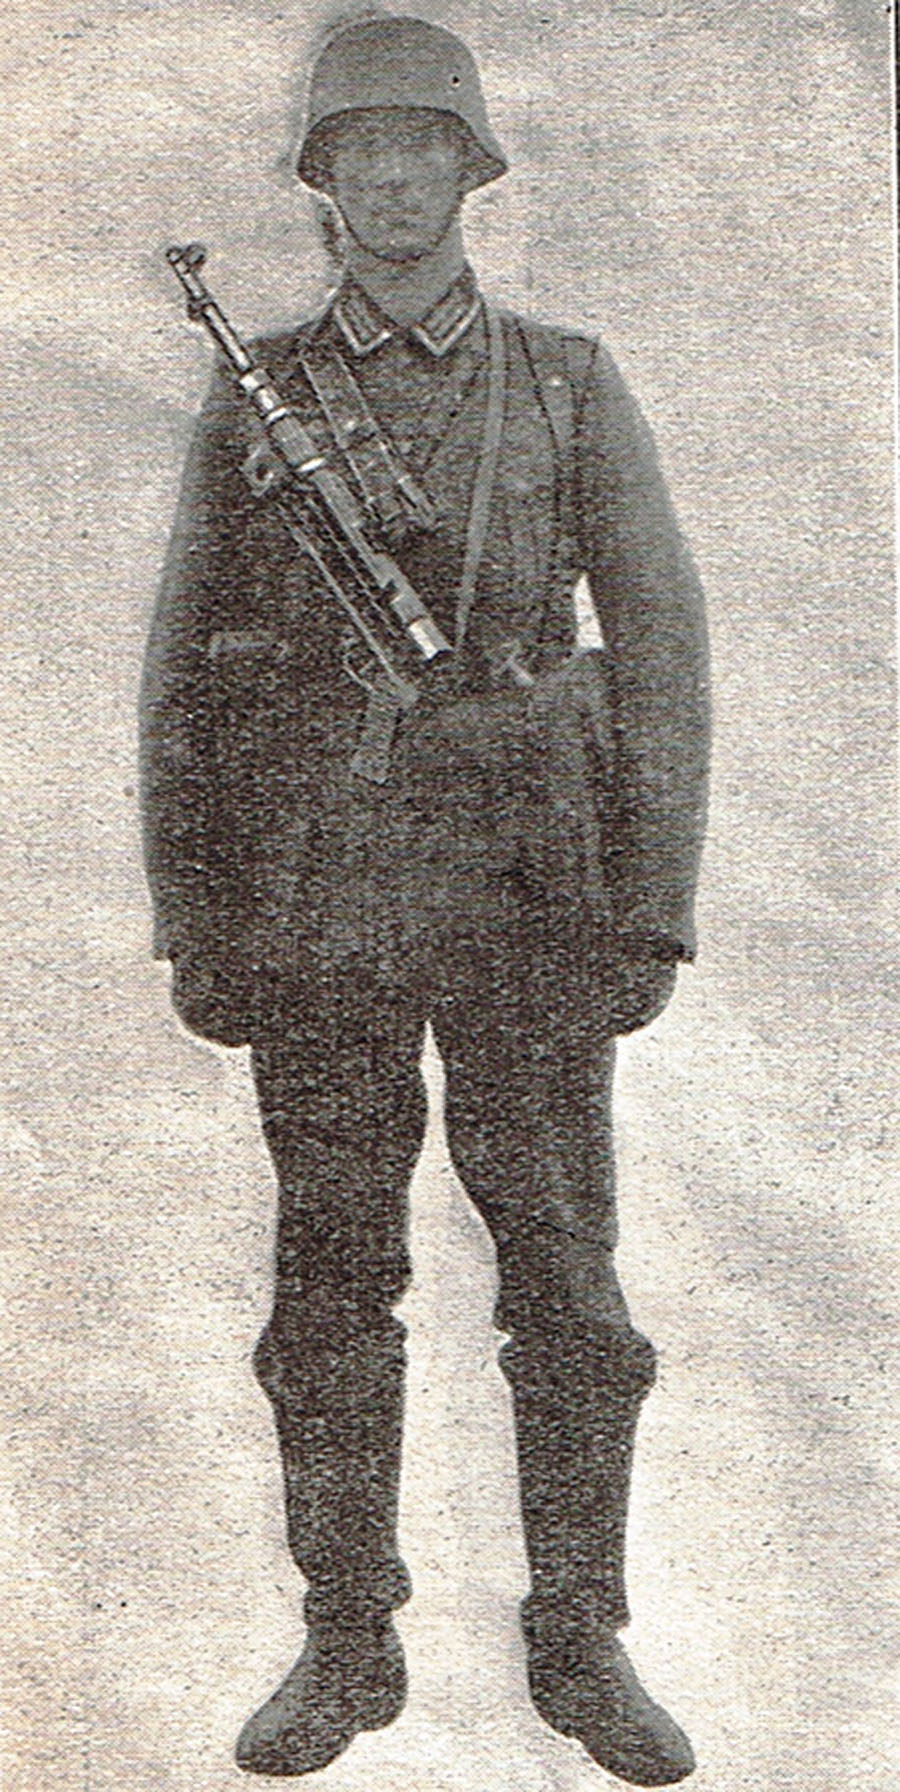 German infantry goon with MP40 slung.